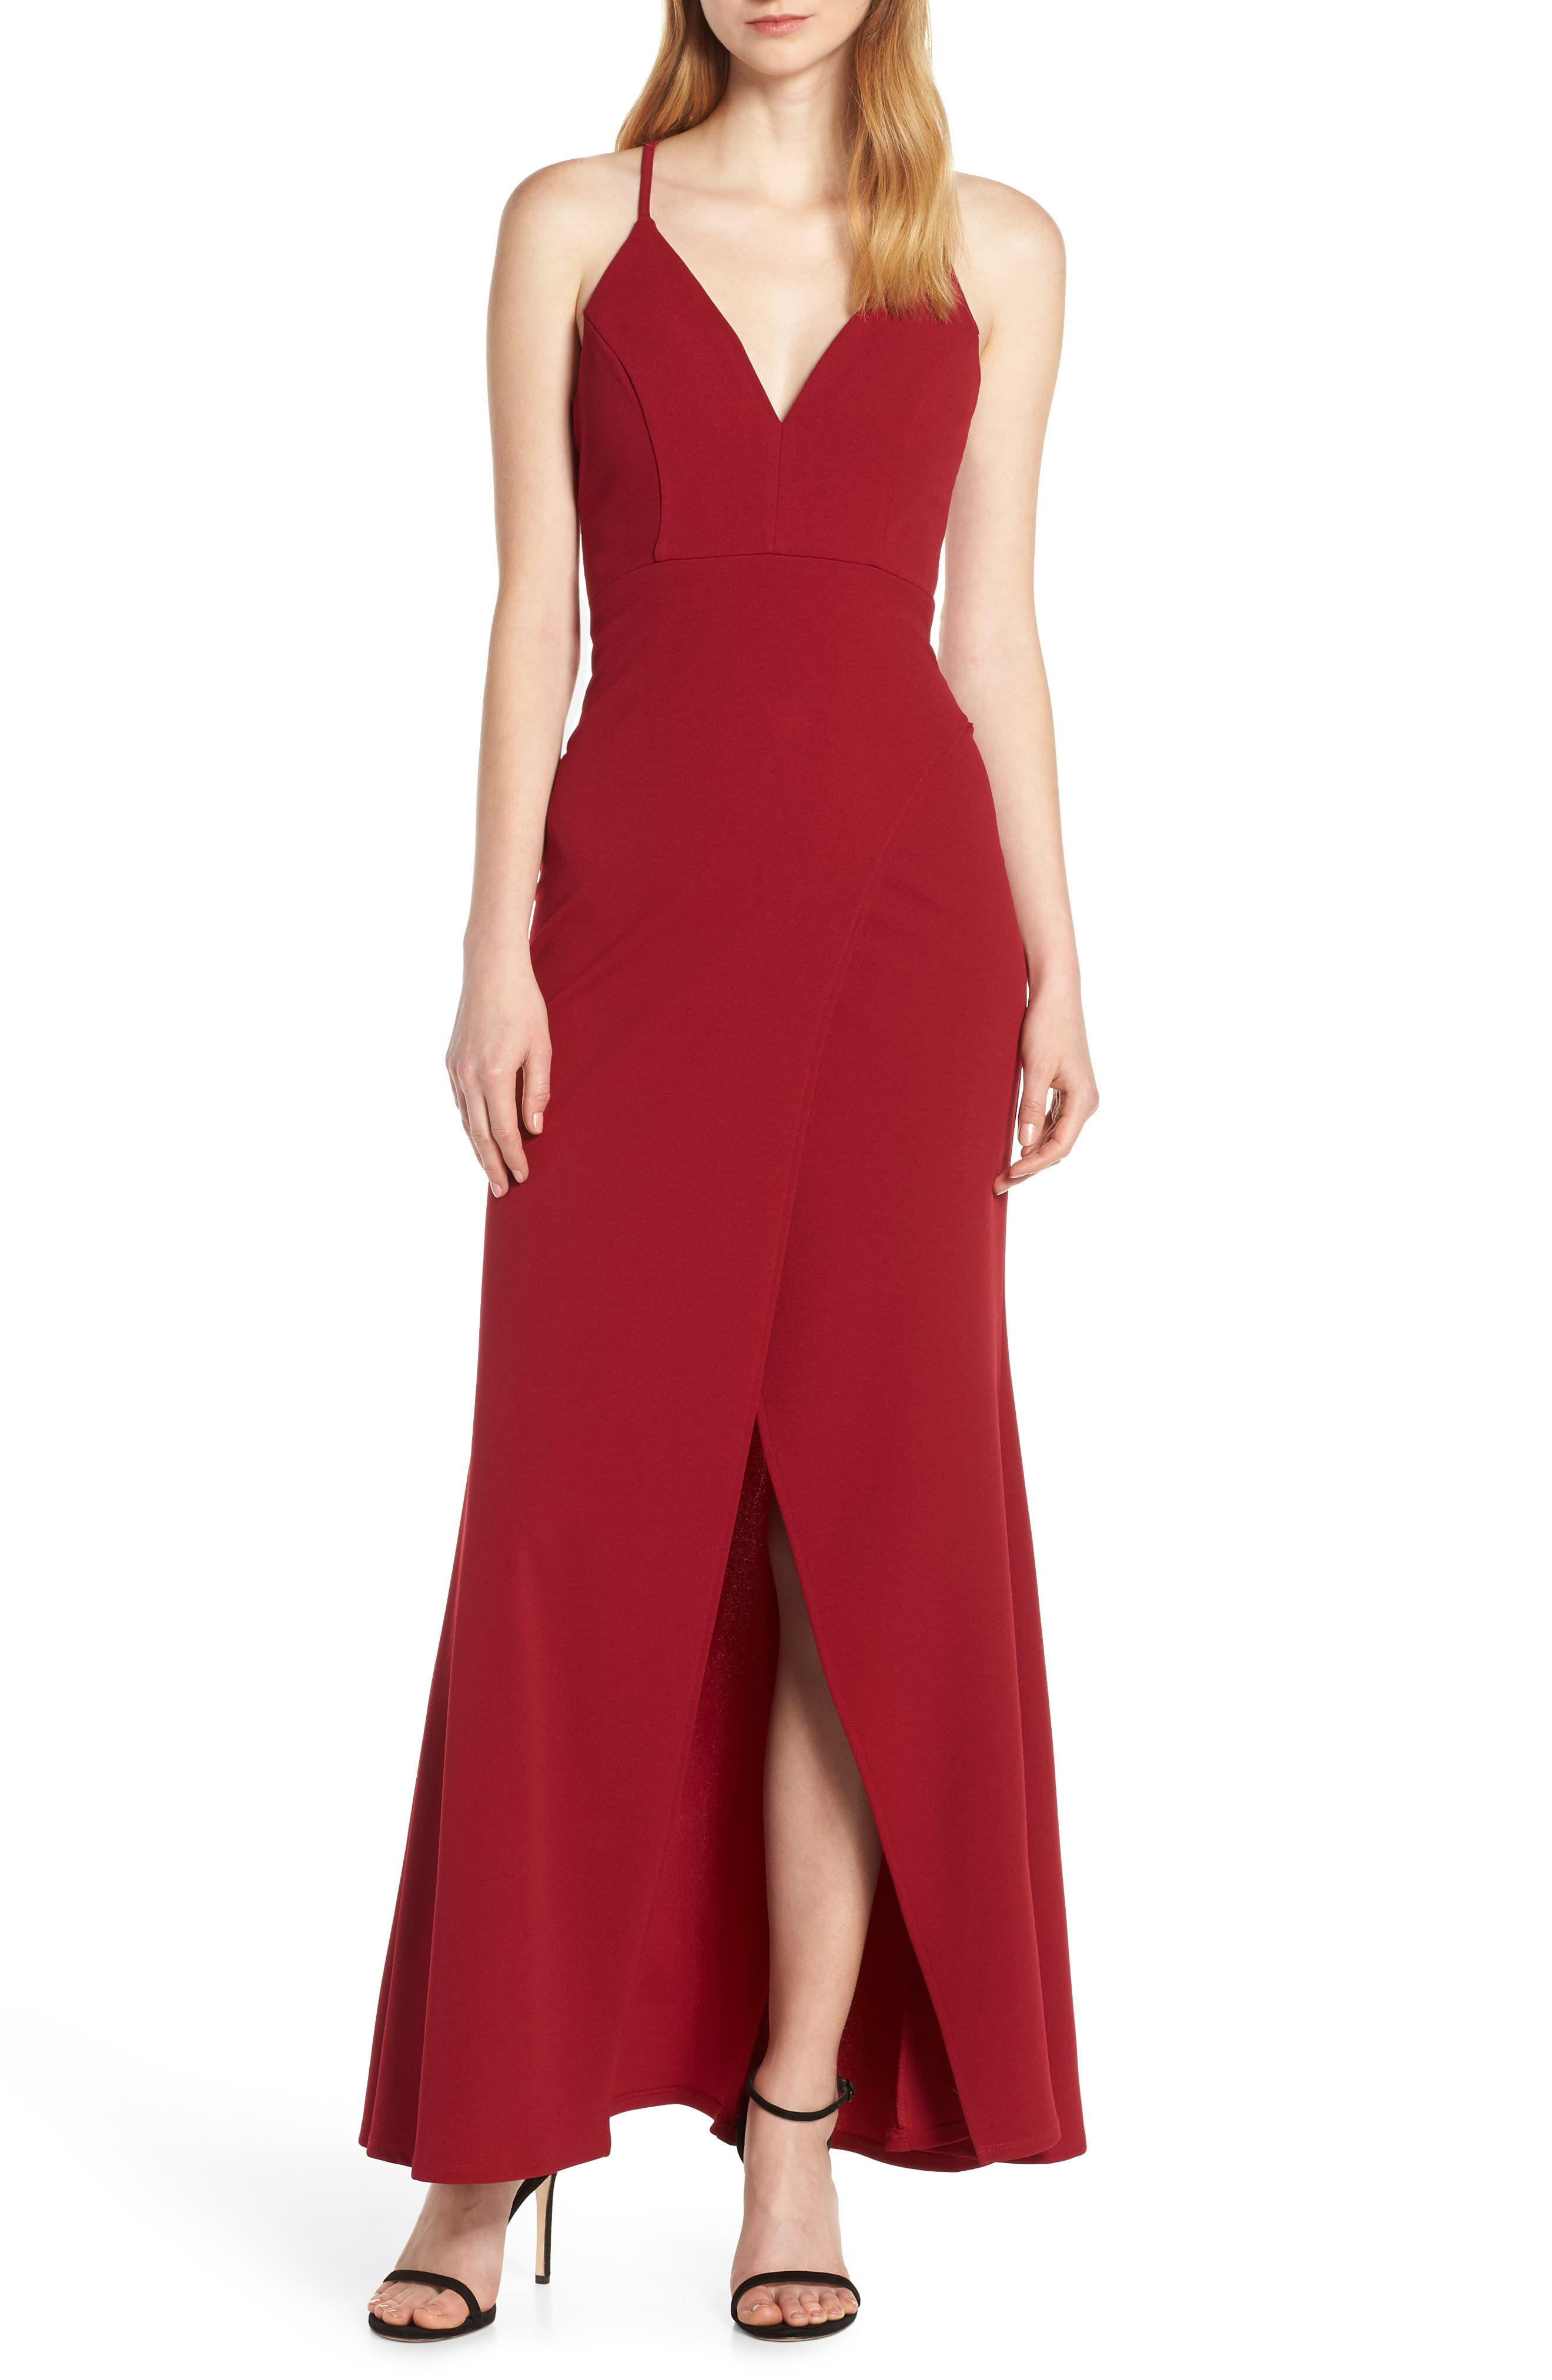 Sequin Hearts Lace & Crepe Halter Evening Dress, Red